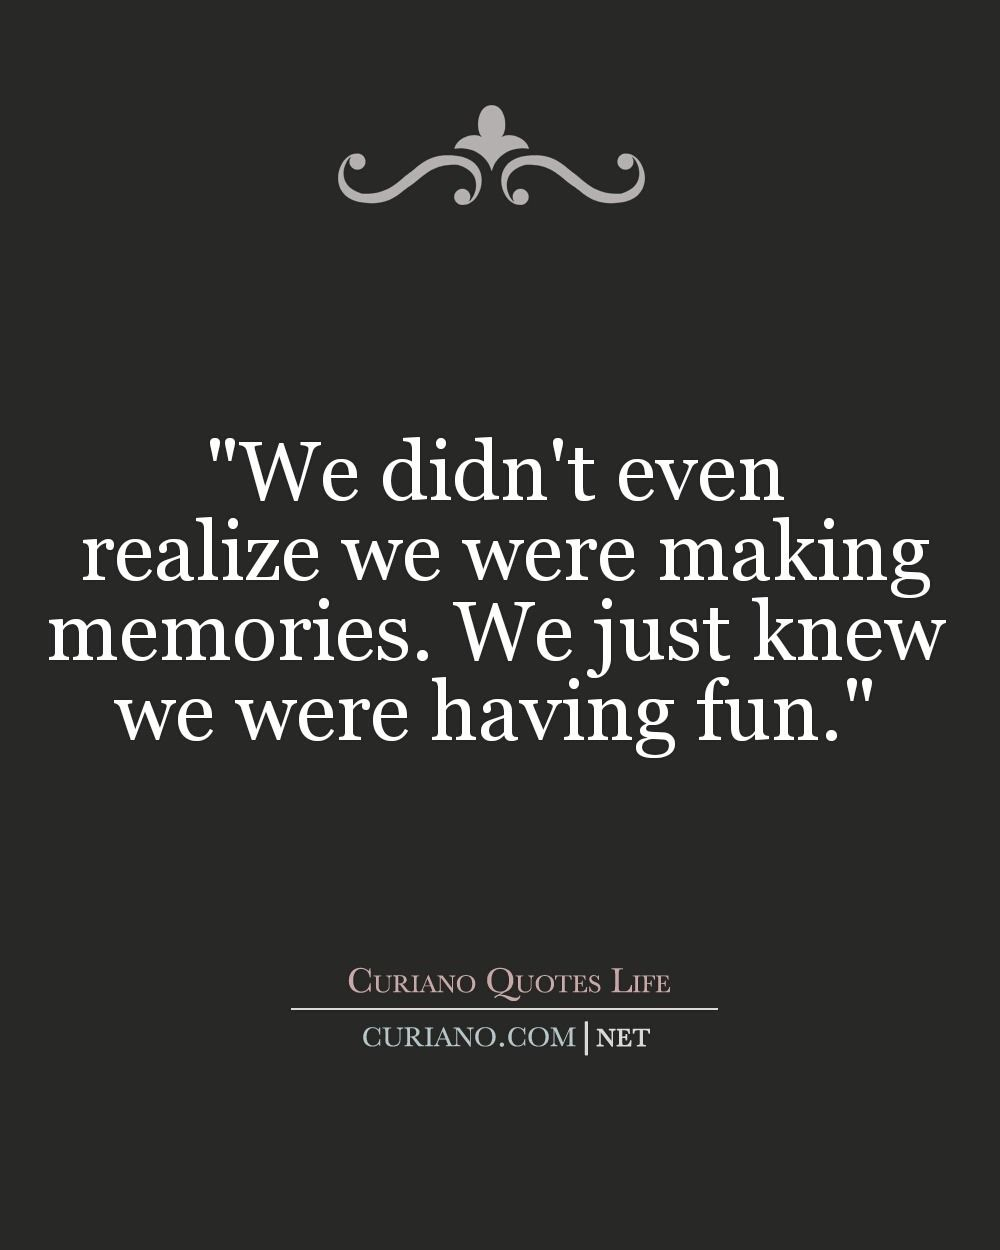 Best Quotes About Life This Blog Curiano Quotes Life Shows Quotes Best Life Quote